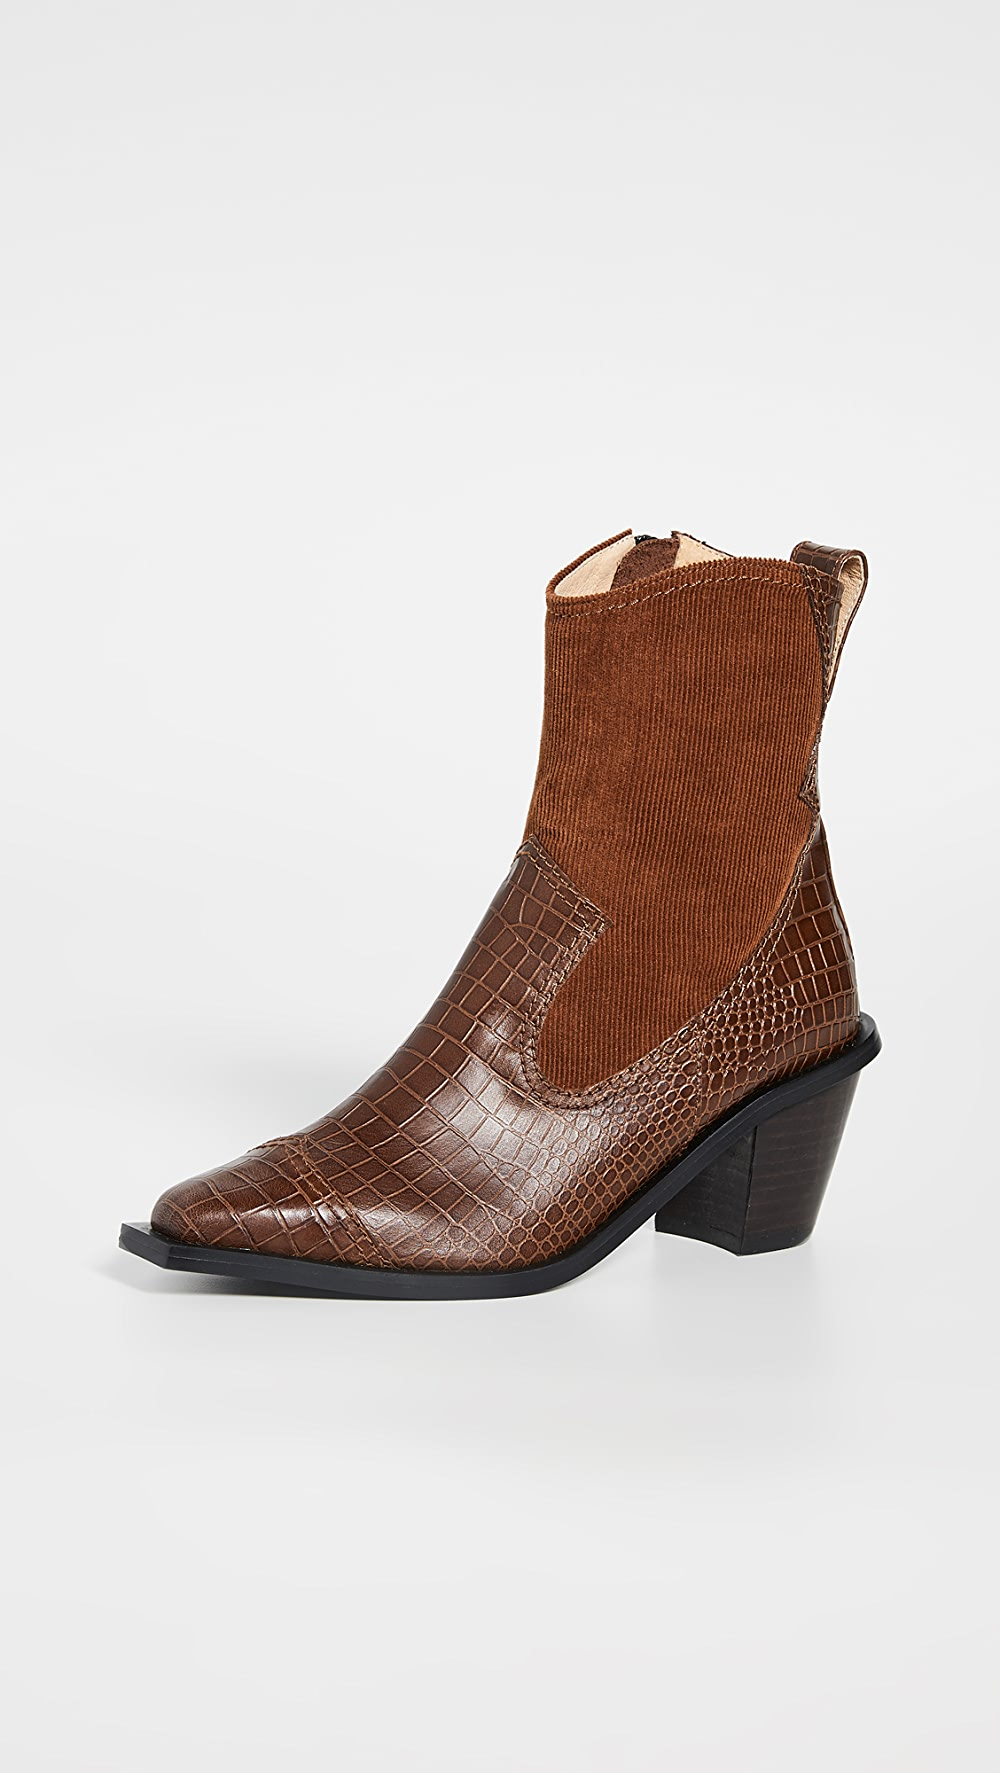 Amiable Reike Nen - Western Wave Boots To Help Digest Greasy Food